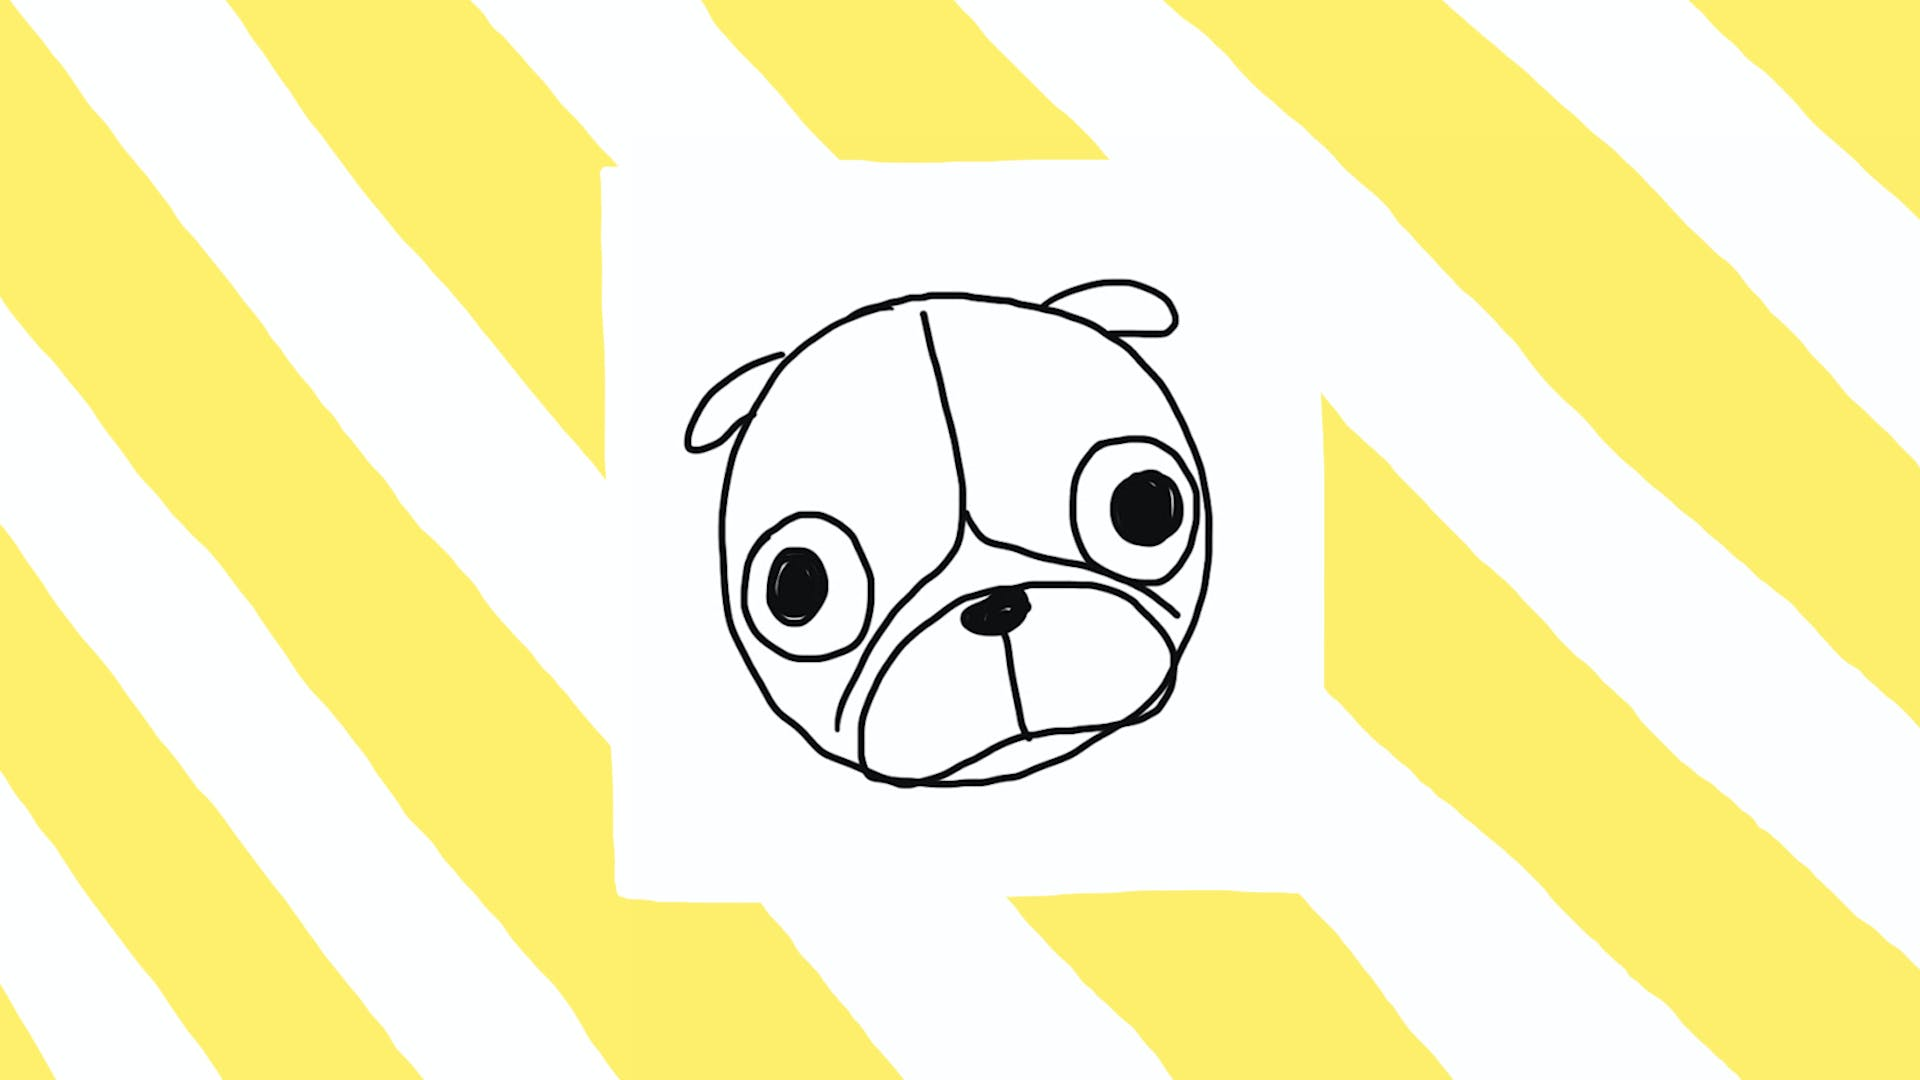 Wrinkle up your pug by putting an upside-down Y in the middle of the head